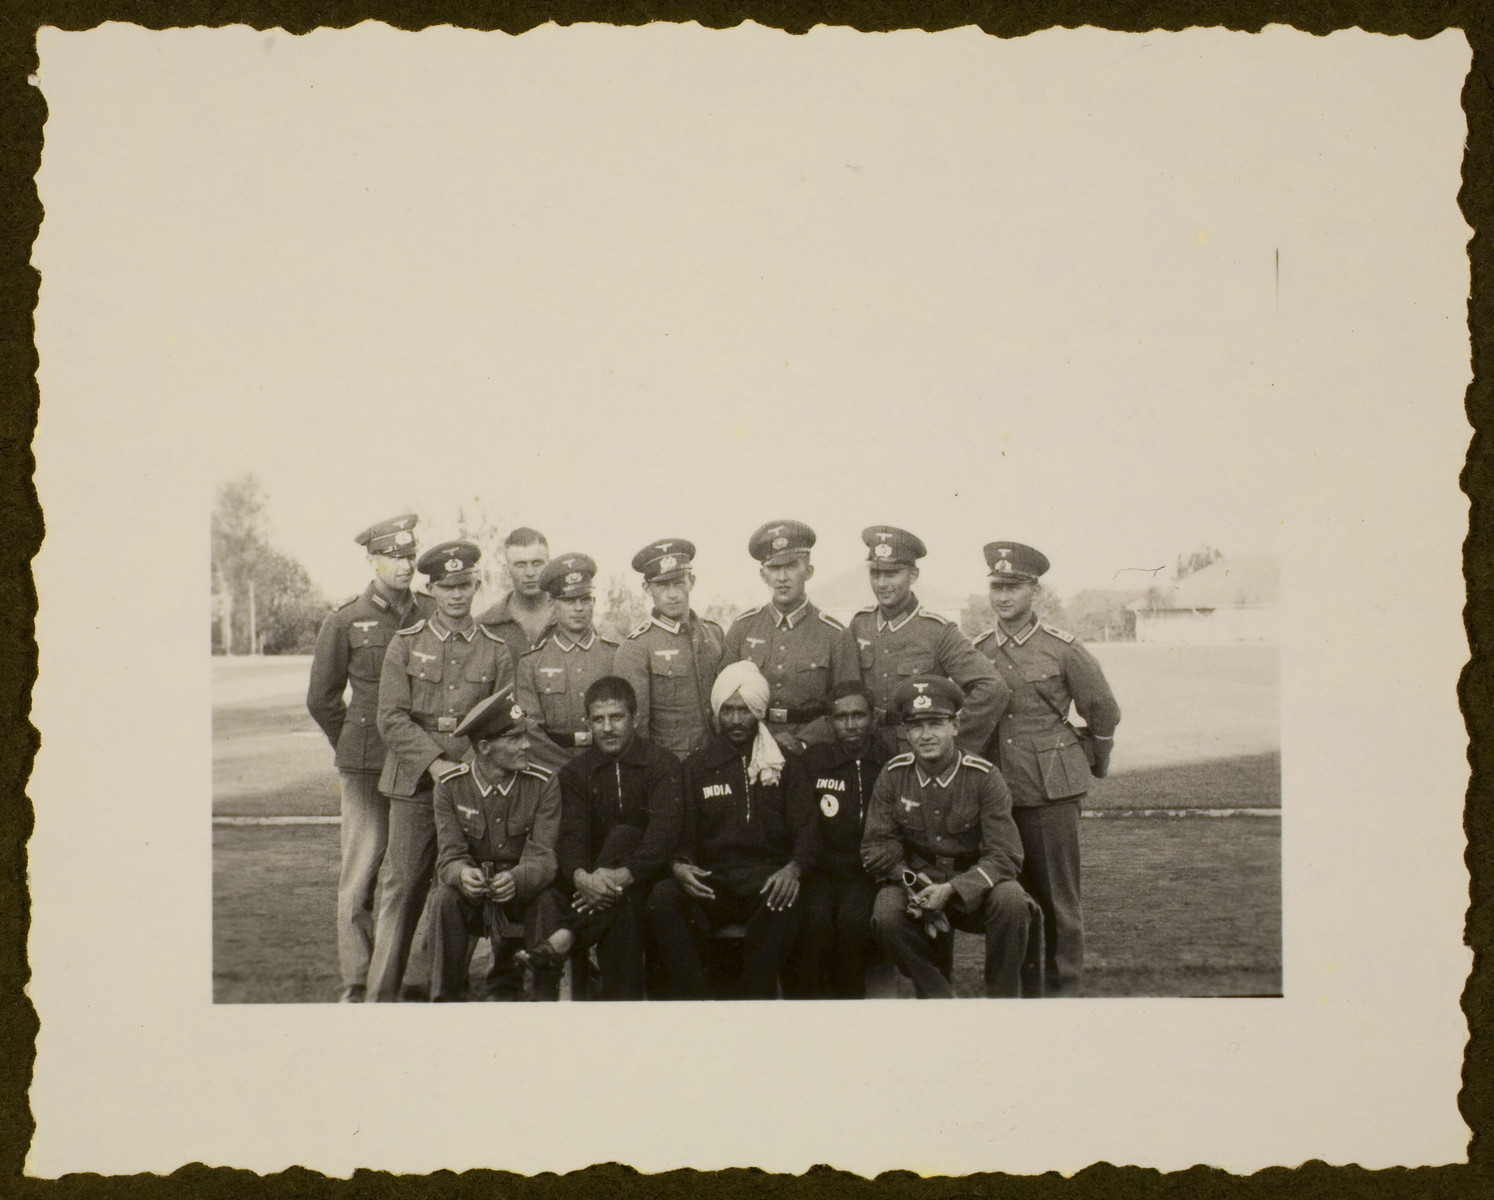 A group of uniformed German soldiers, possibly at the Olympic village, pose with three Indian Olympic athletes.